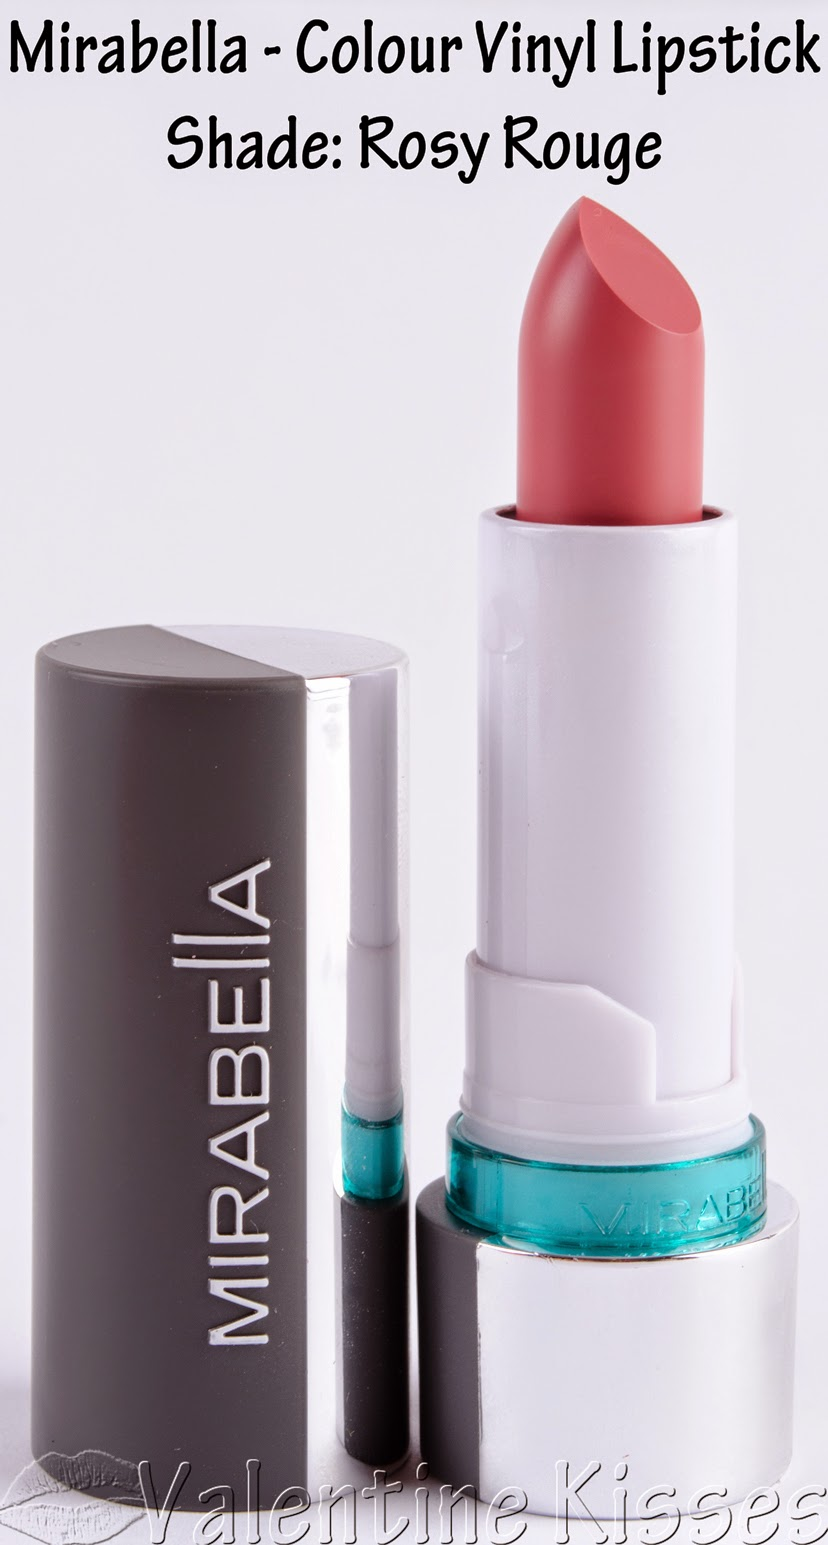 Watch Mirabella Colour Vinyl Lipstick video